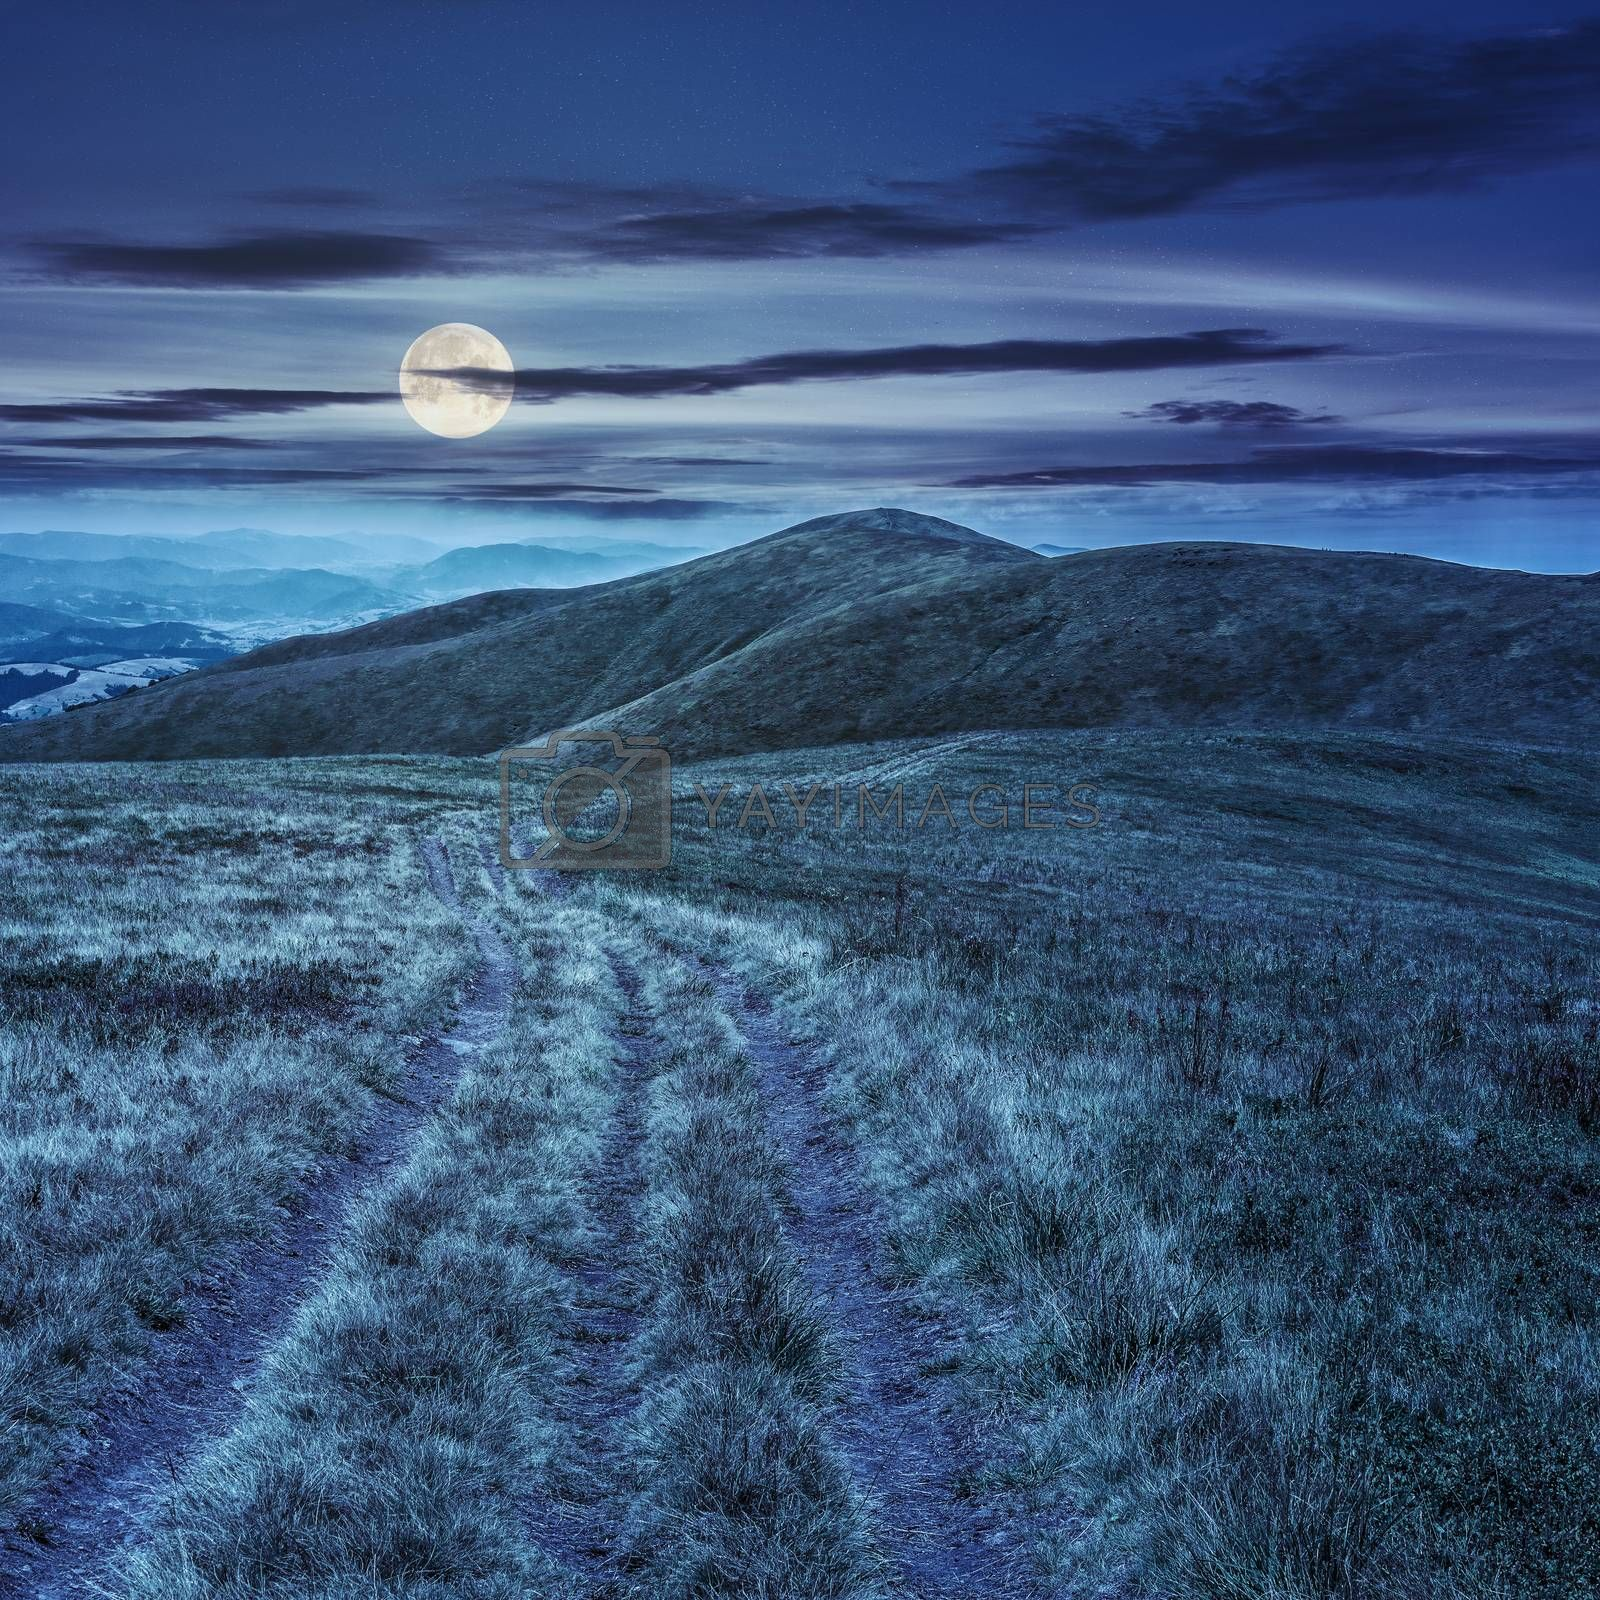 mountain landscape. curve path through the meadow on hillside at night in full moon light